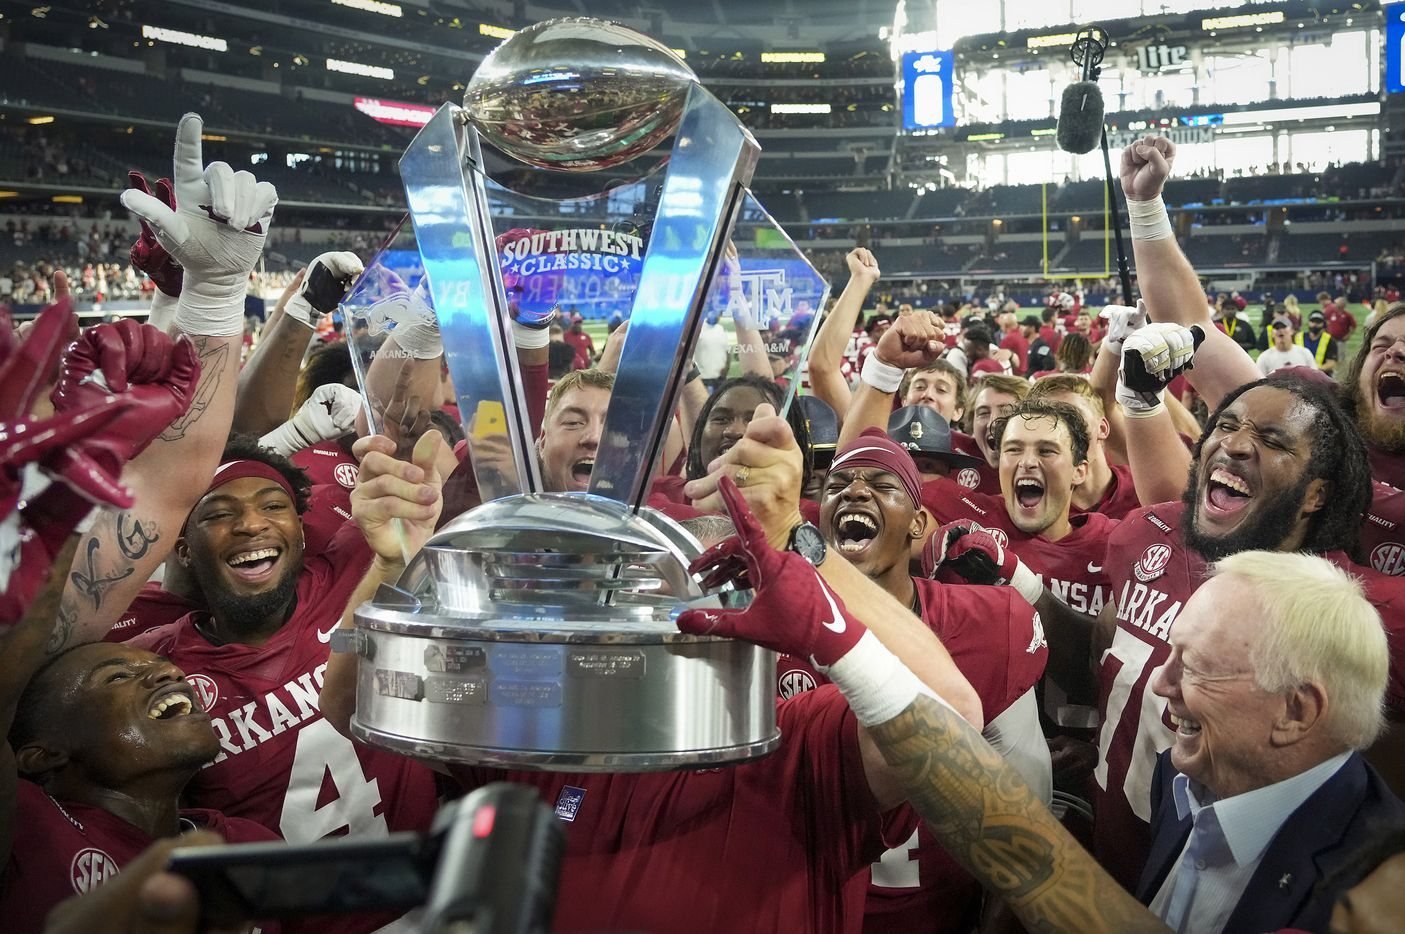 Dallas Cowboys owner and general manager Jerry Jones (bottom right) joins the celebration as Arkansas head coach Sam Pittman lifts the Southwest Classic trophy after a victory over Texas A&M in an NCAA football game at AT&T Stadium on Saturday, Sept. 25, 2021, in Arlington. Arkansas, Jones alma mater, won the game 20-10.